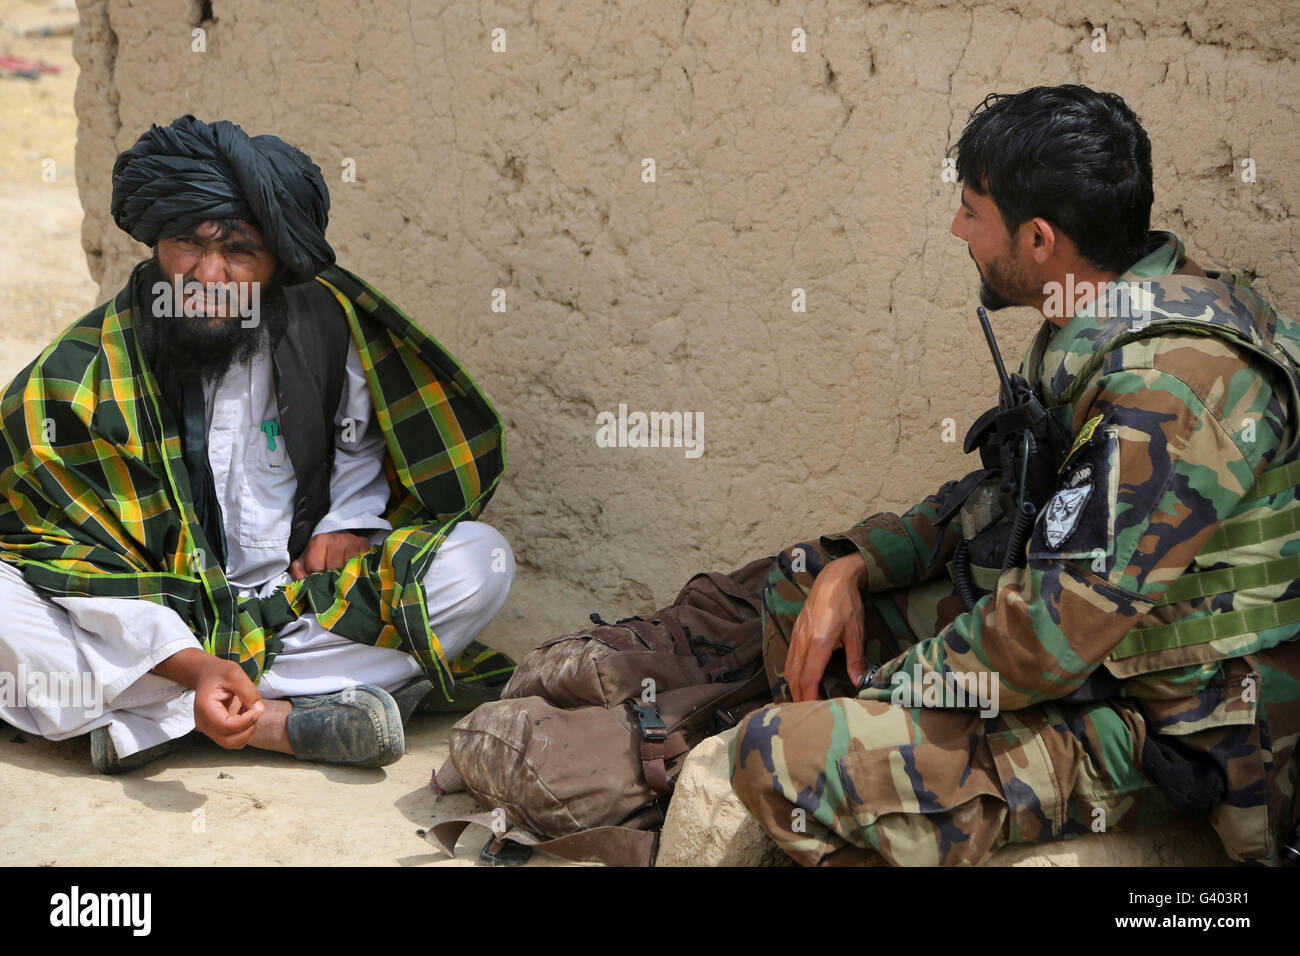 A commando from 3rd Special Operations Kandak speaks with a local villager. - Stock Image